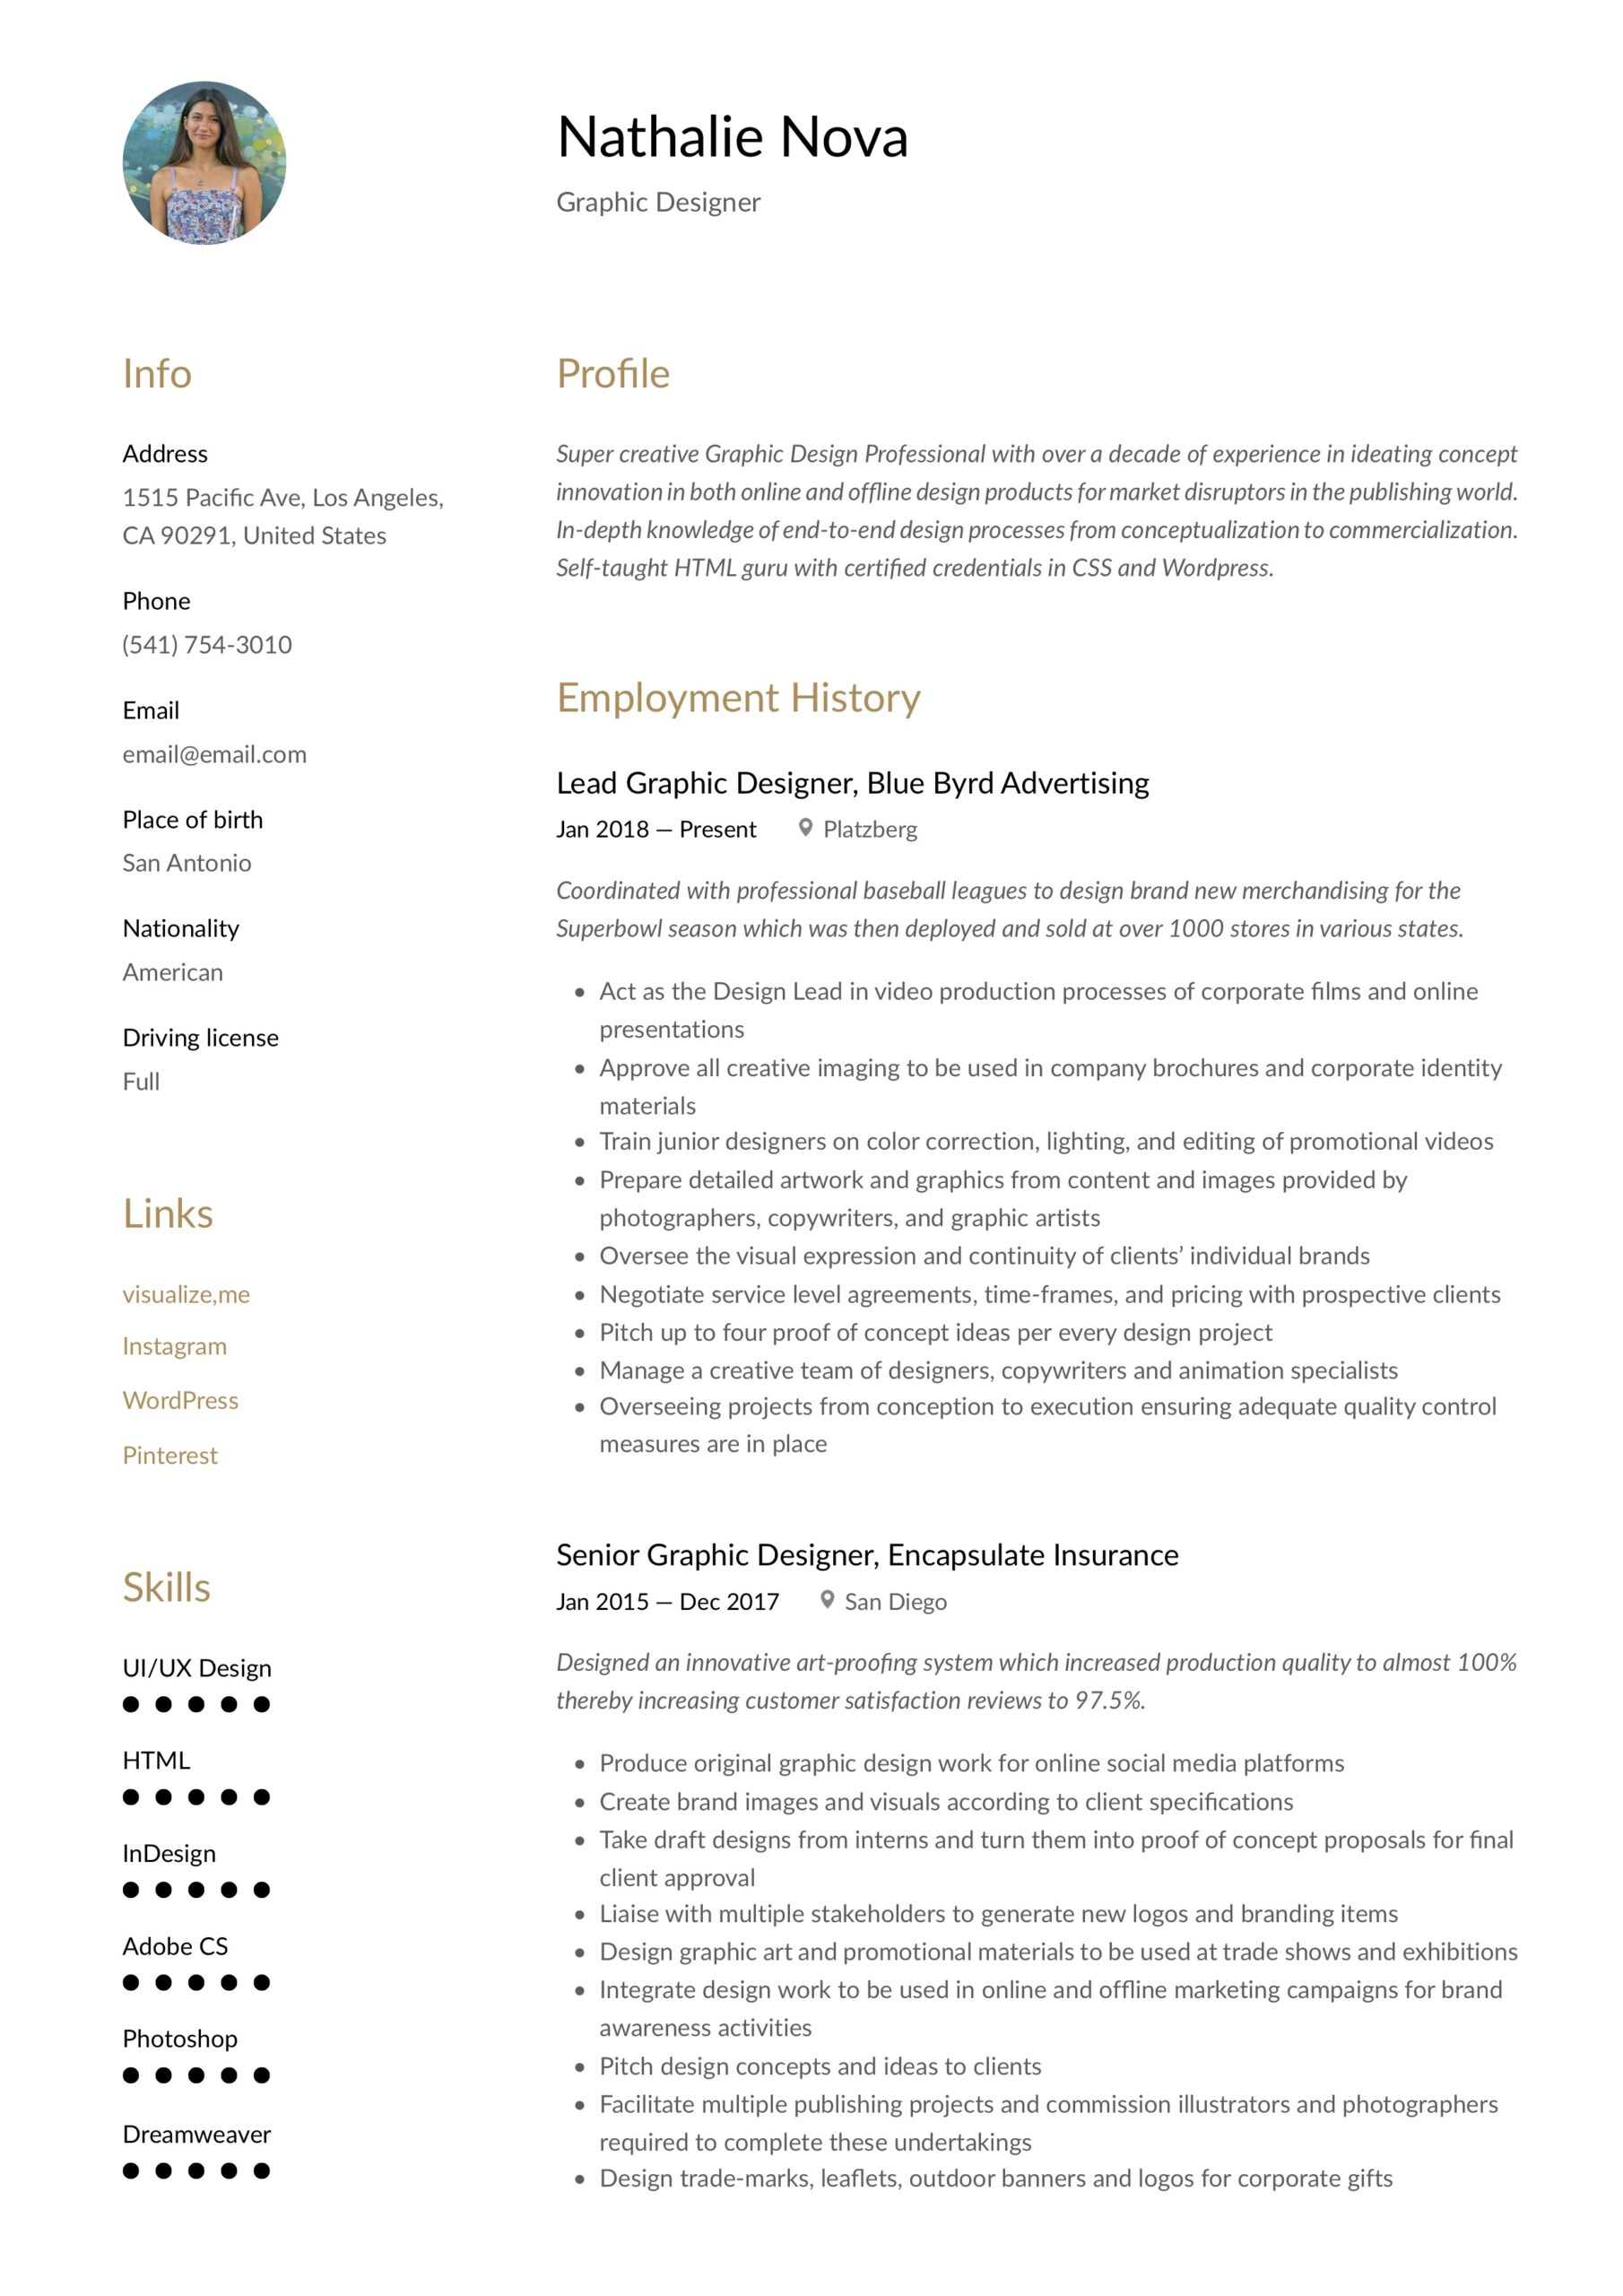 graphic designer resume writing guide examples objective statements yoga instructor Resume Graphic Designer Resume Objective Statements